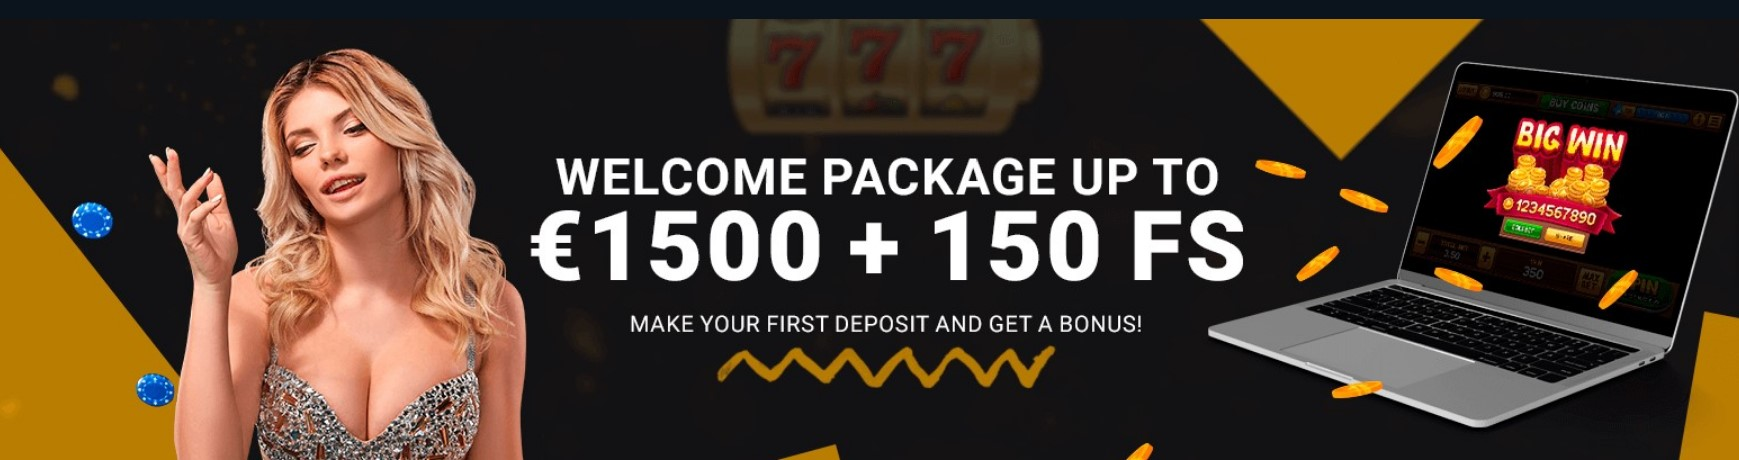 1xBet casino bonus with promo code